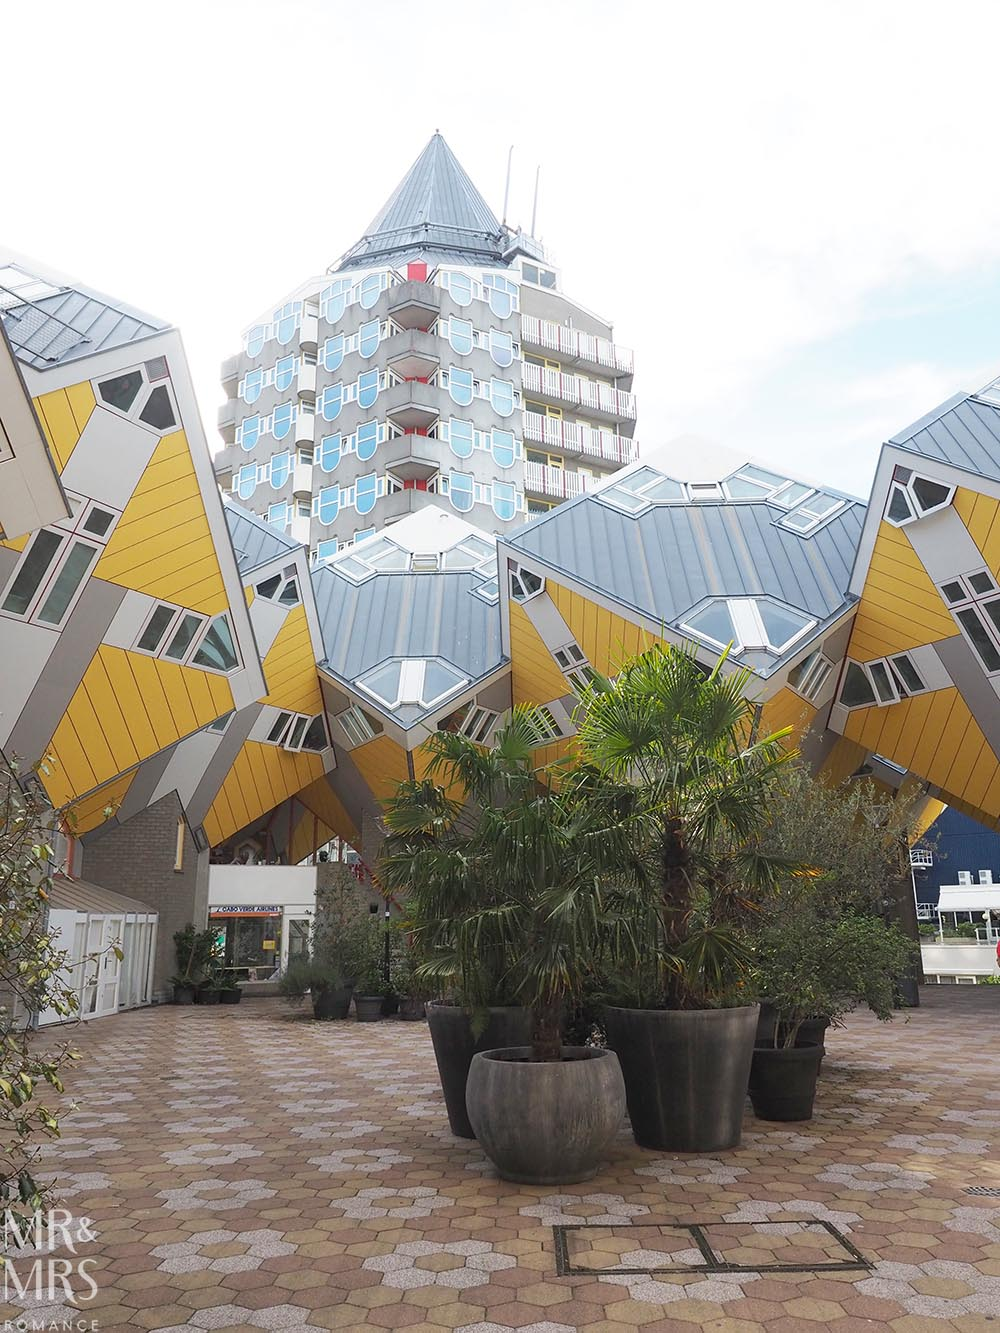 Visit Rotterdam travel guide - MMR - Cube Houses